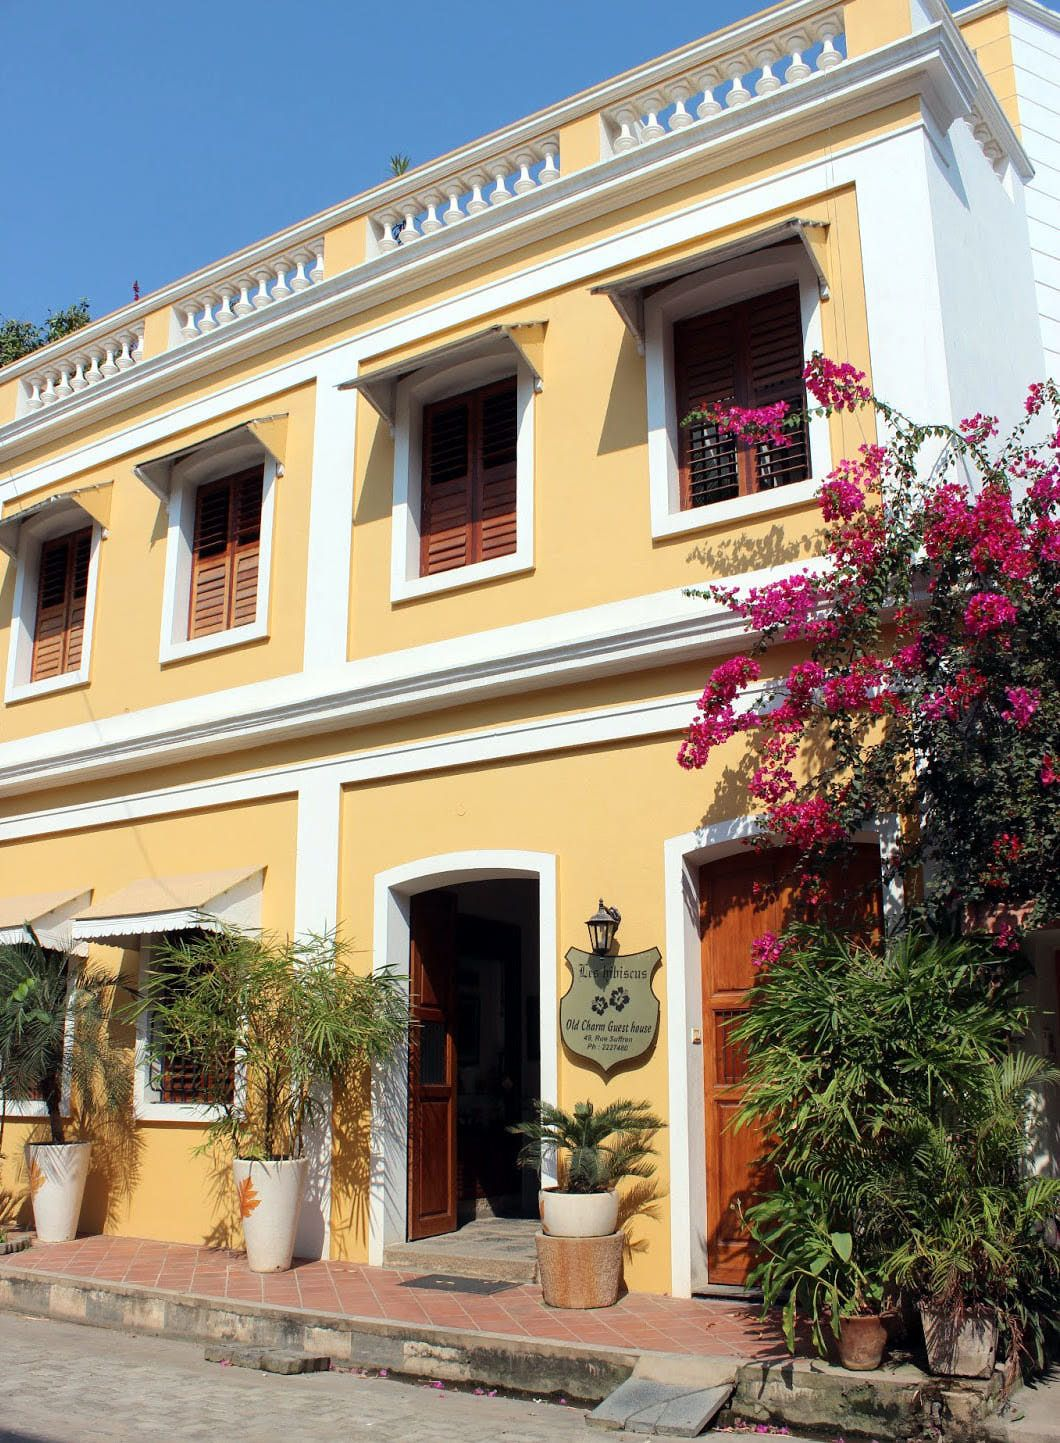 Stay At One Of These Beautiful Beachfront Hotels In Pondicherry Or An Atmospheric Guesthouse The Historic French Quarter Nearby